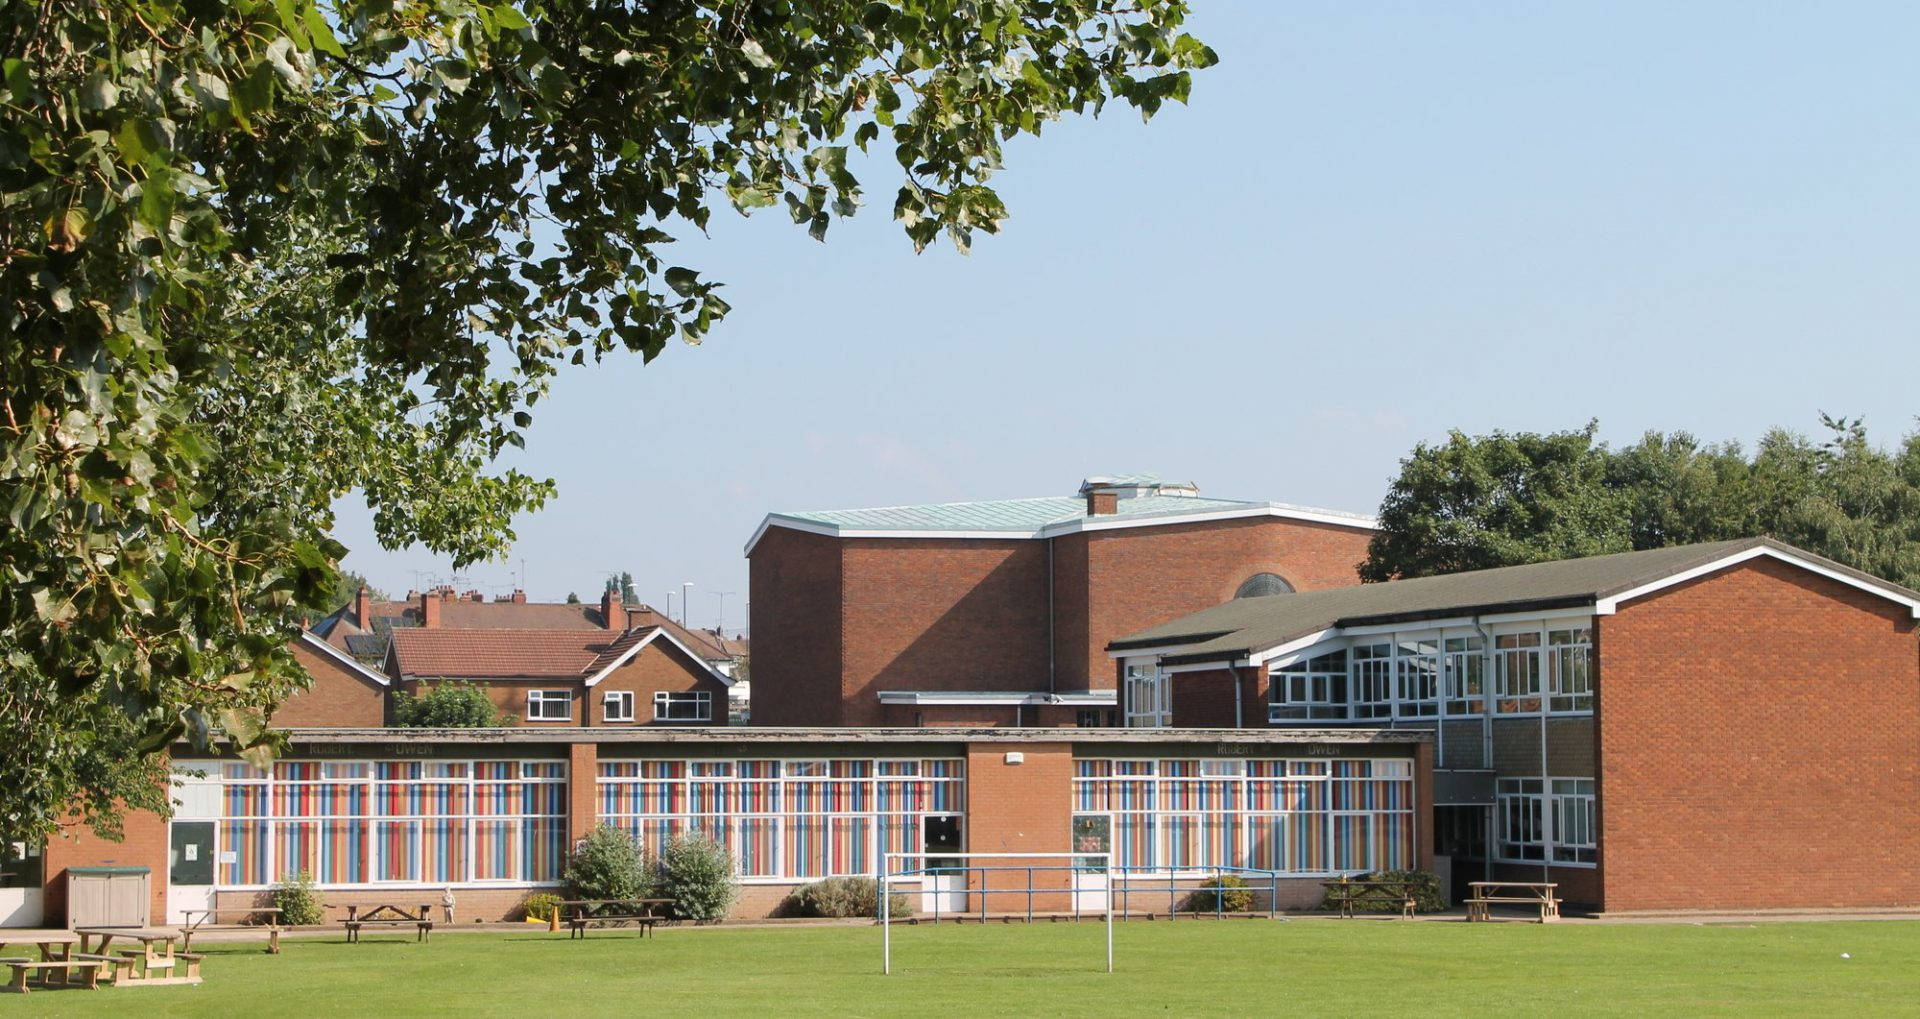 Finding a Heating System Suitable For A School Environment